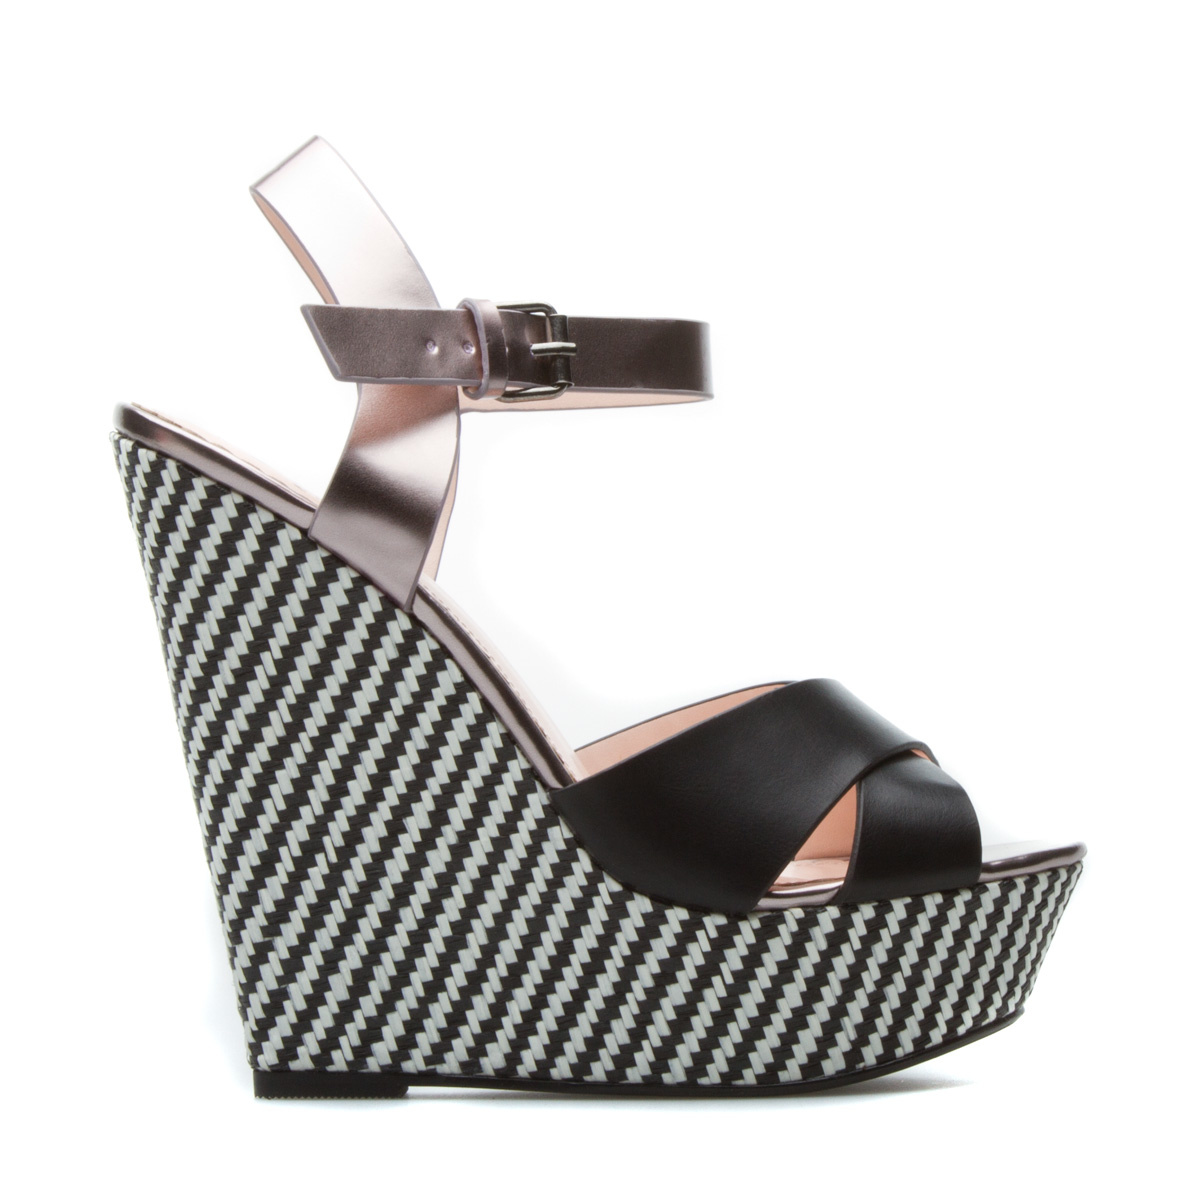 Women's Wedge Sandals, Strappy Sandals, Women's Platform Shoes ...